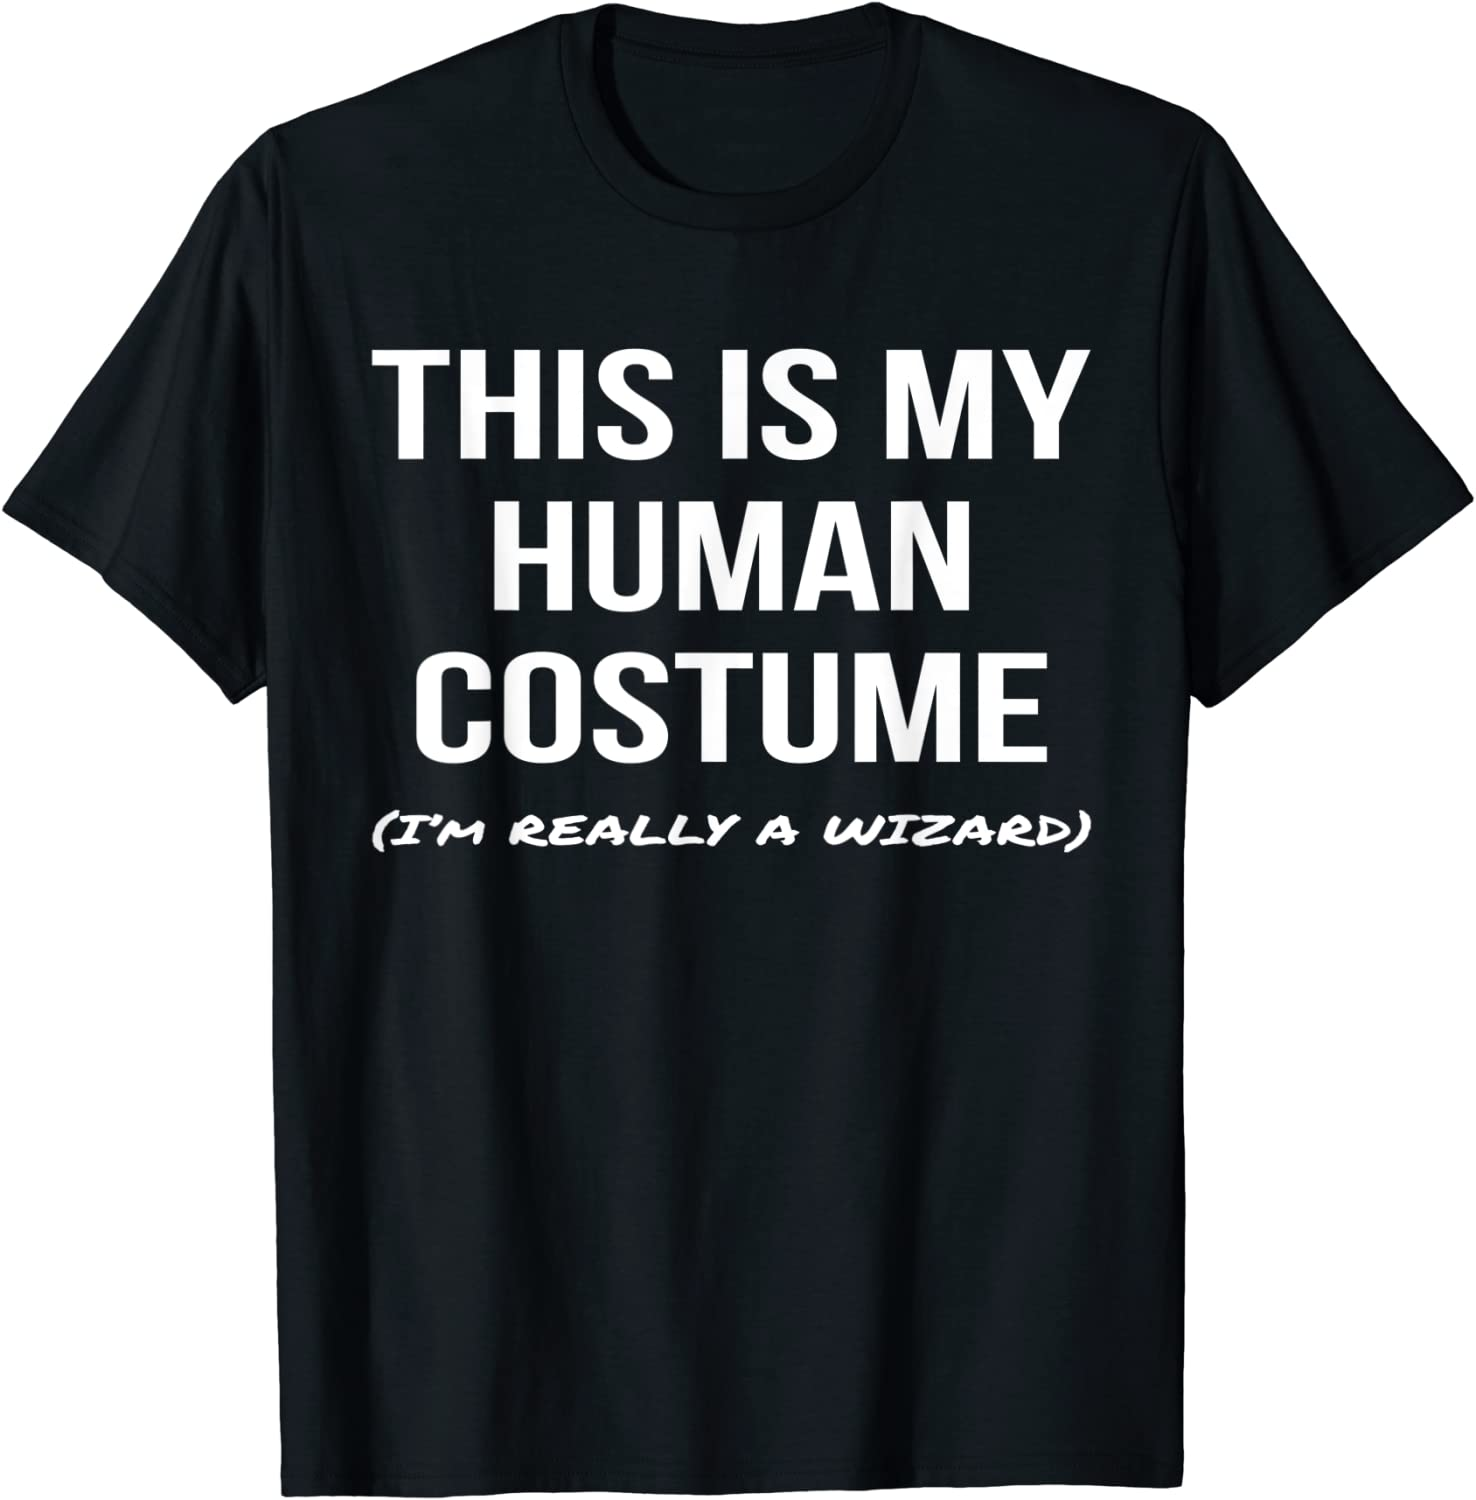 This Is My Human Costume I'm Cosplay a Wizard Max 78% OFF Shirt Over item handling Really